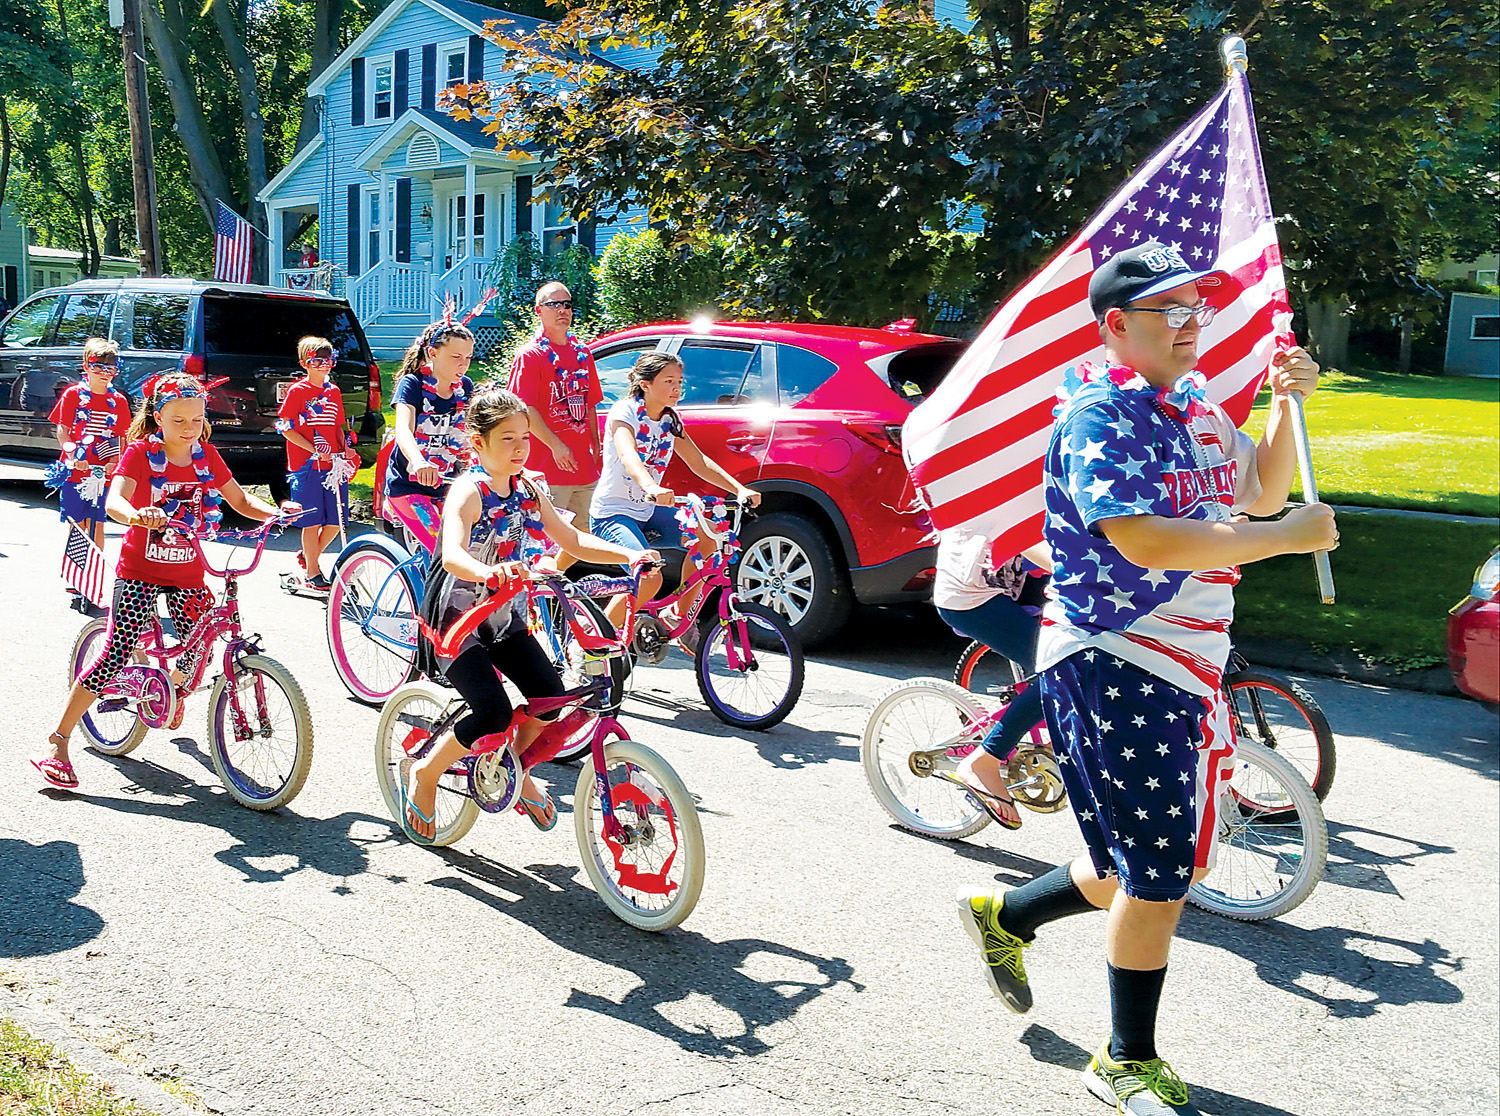 Part of the Children's Parade in last year's Old Fashion Fourth of July celebration at the Morgan-Manning House. Photo by Dianne Hickerson